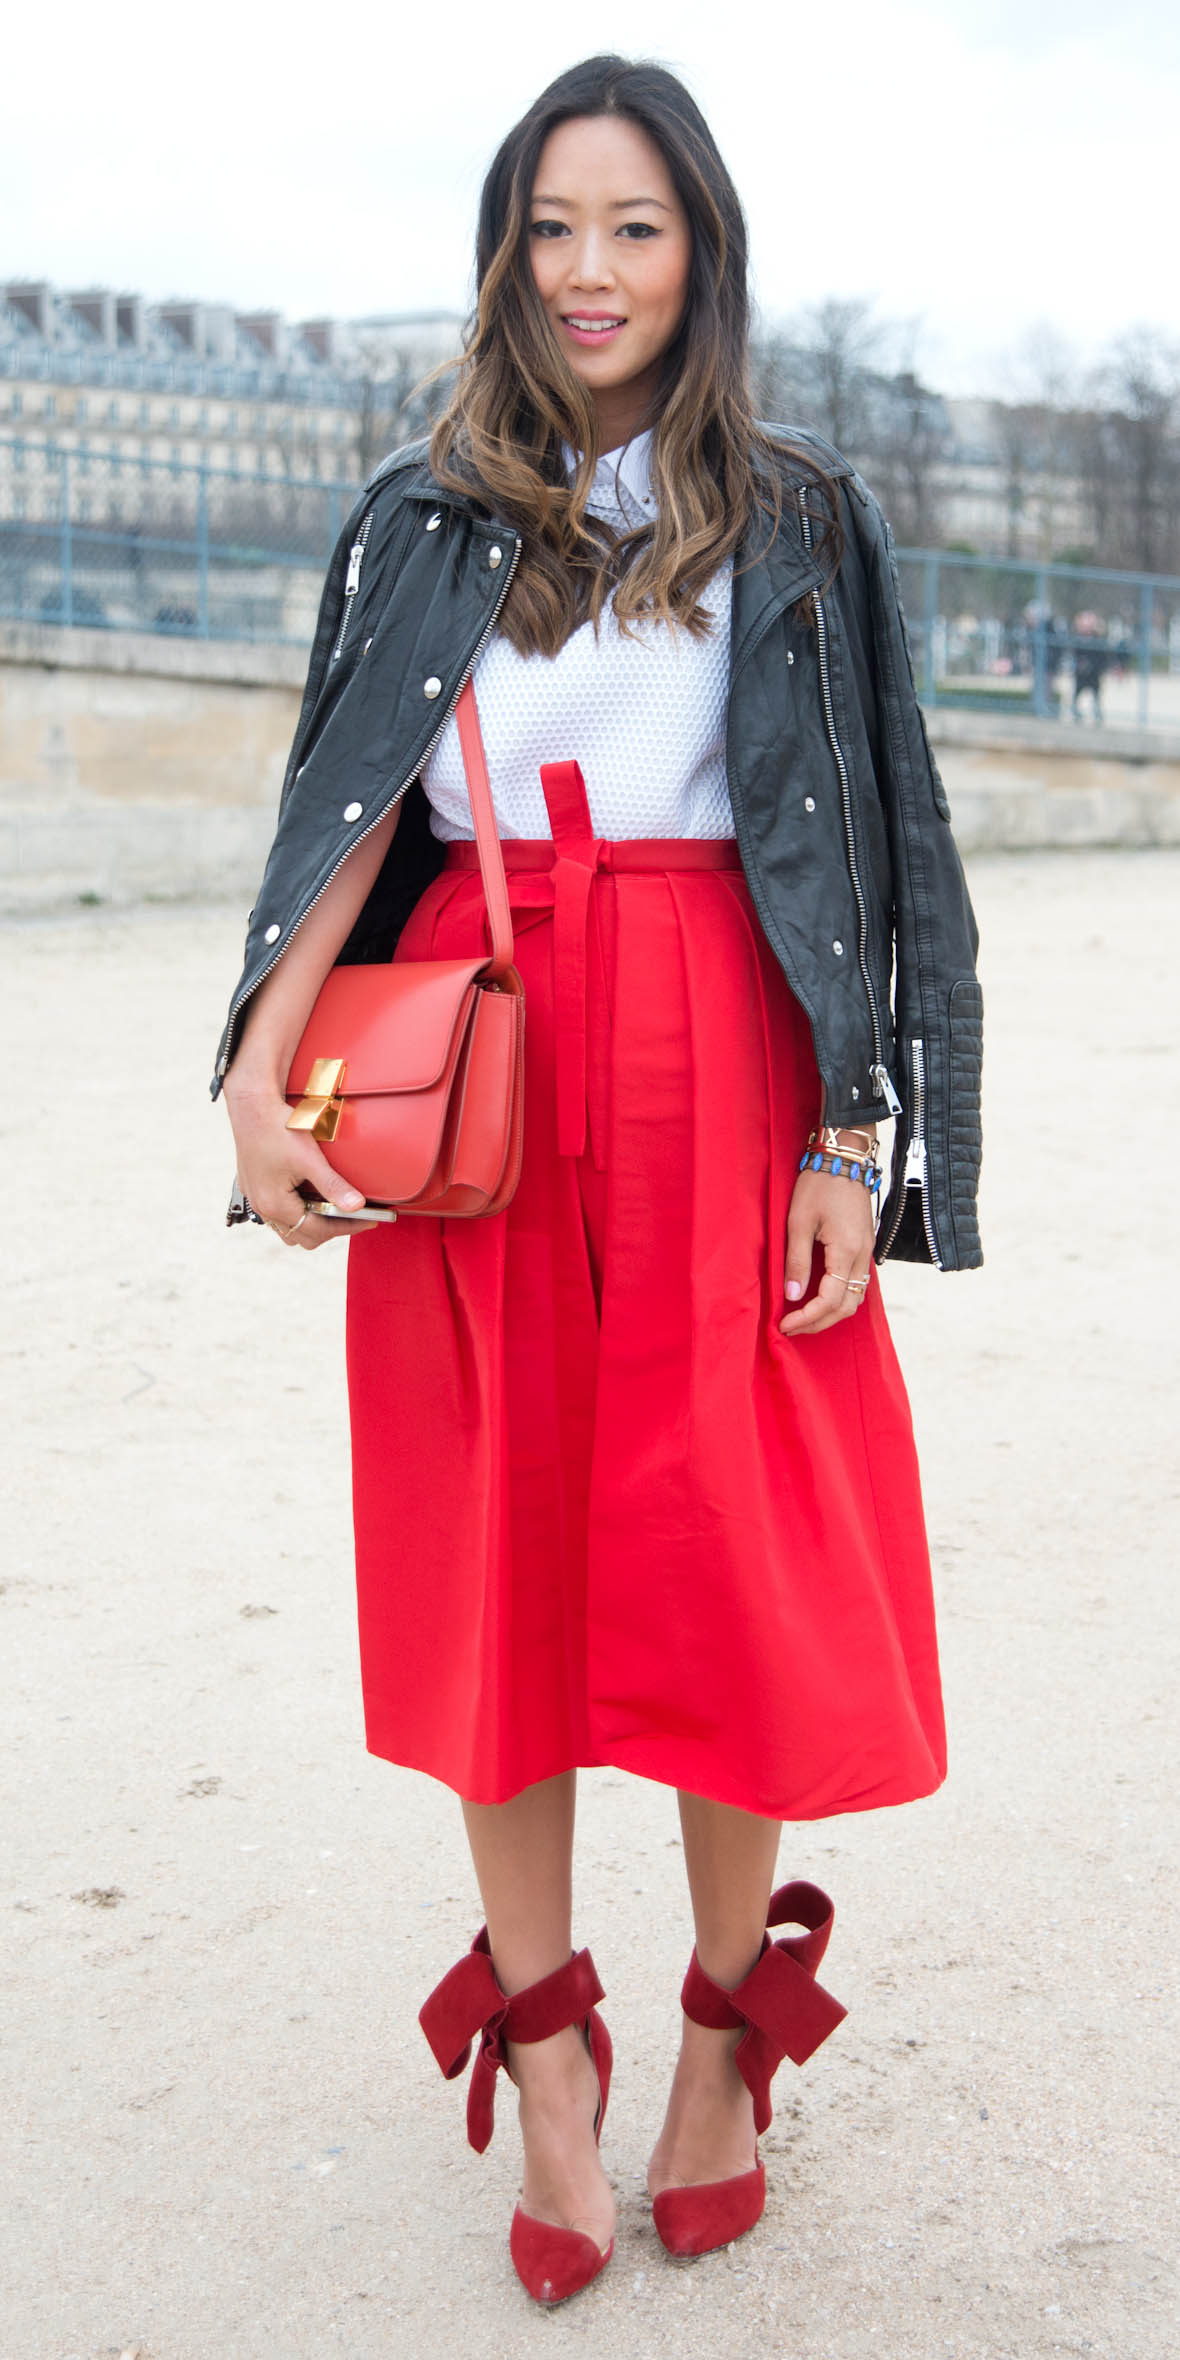 red-midi-skirt-red-bag-white-top-black-jacket-moto-red-shoe-pumps-brun-howtowear-valentinesday-outfit-fall-winter-dinner.jpg